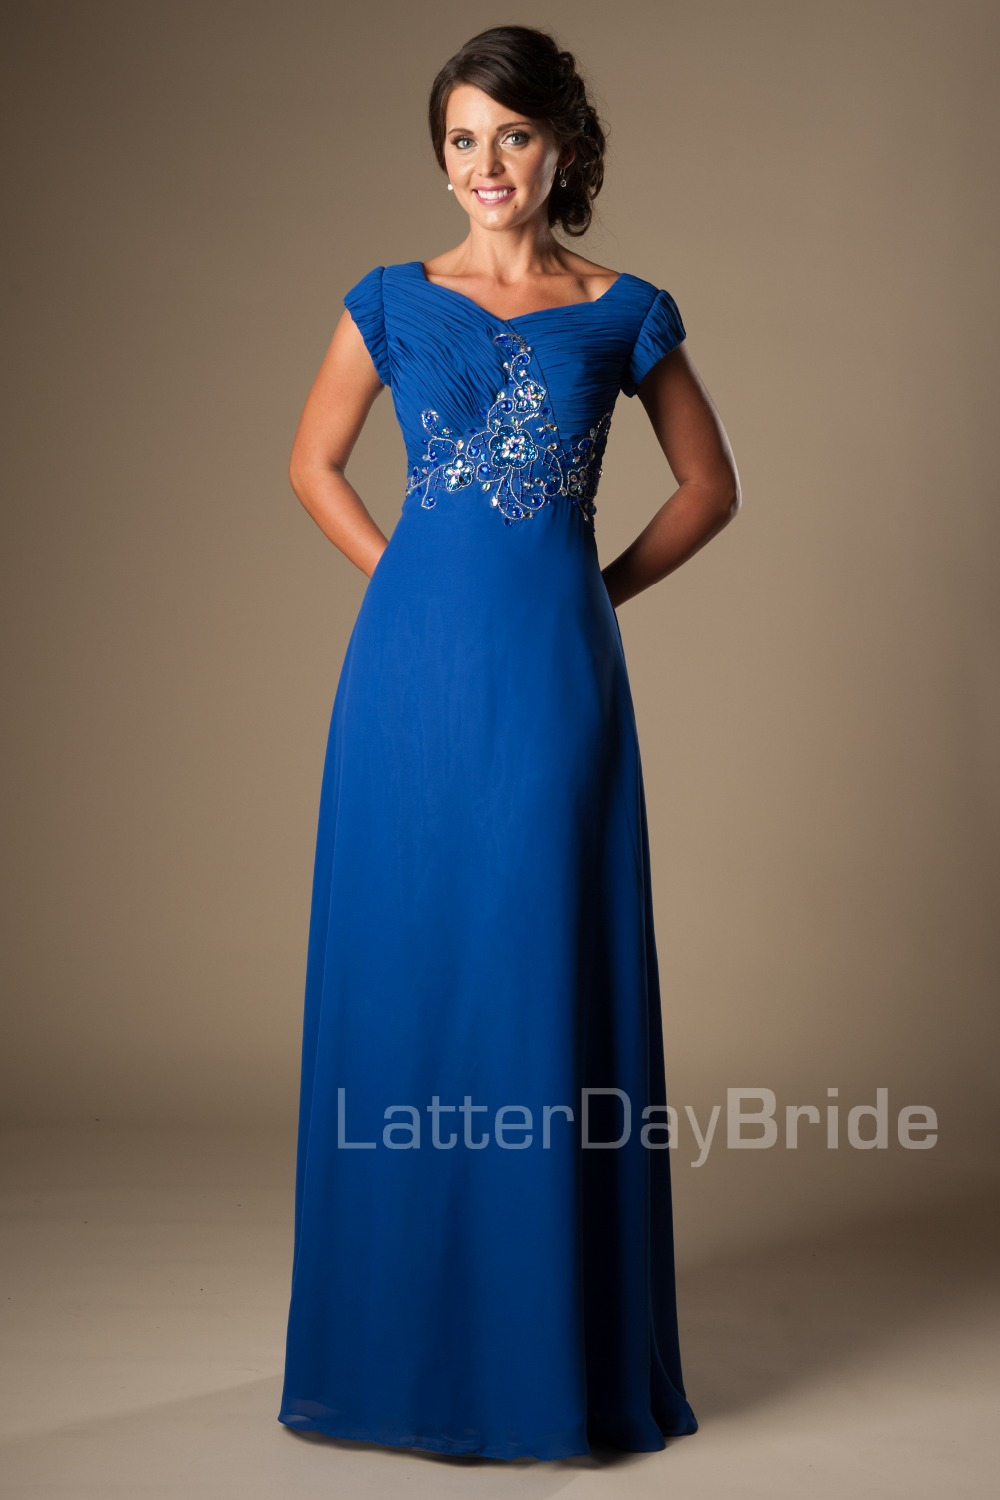 Bridesmaids dresses with sleeves vosoi popular bridesmaids dresses royal blue with sleeves buy cheap ombrellifo Choice Image